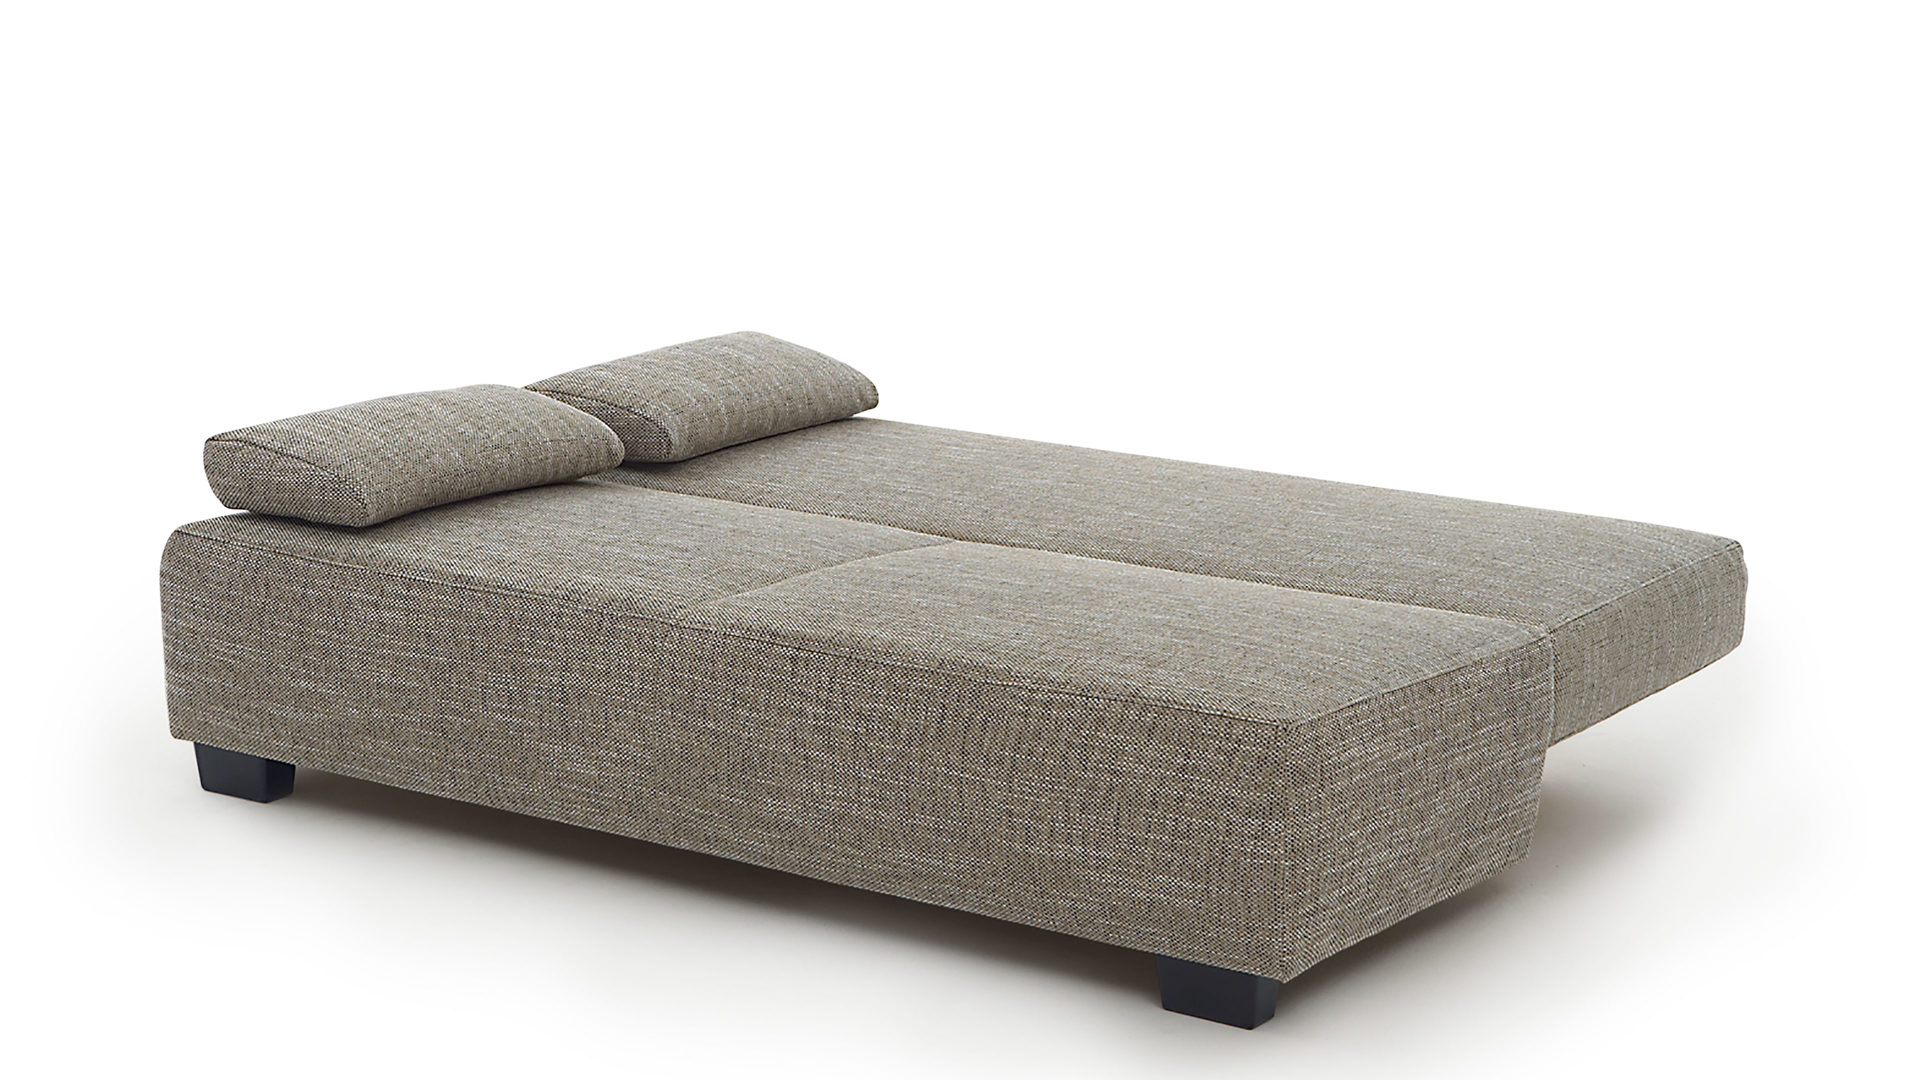 Schlafsofa Jugendzimmer 2er Sofa Grau Frisch L Sofa Awesome Hay Couch 0d Archives Sofa